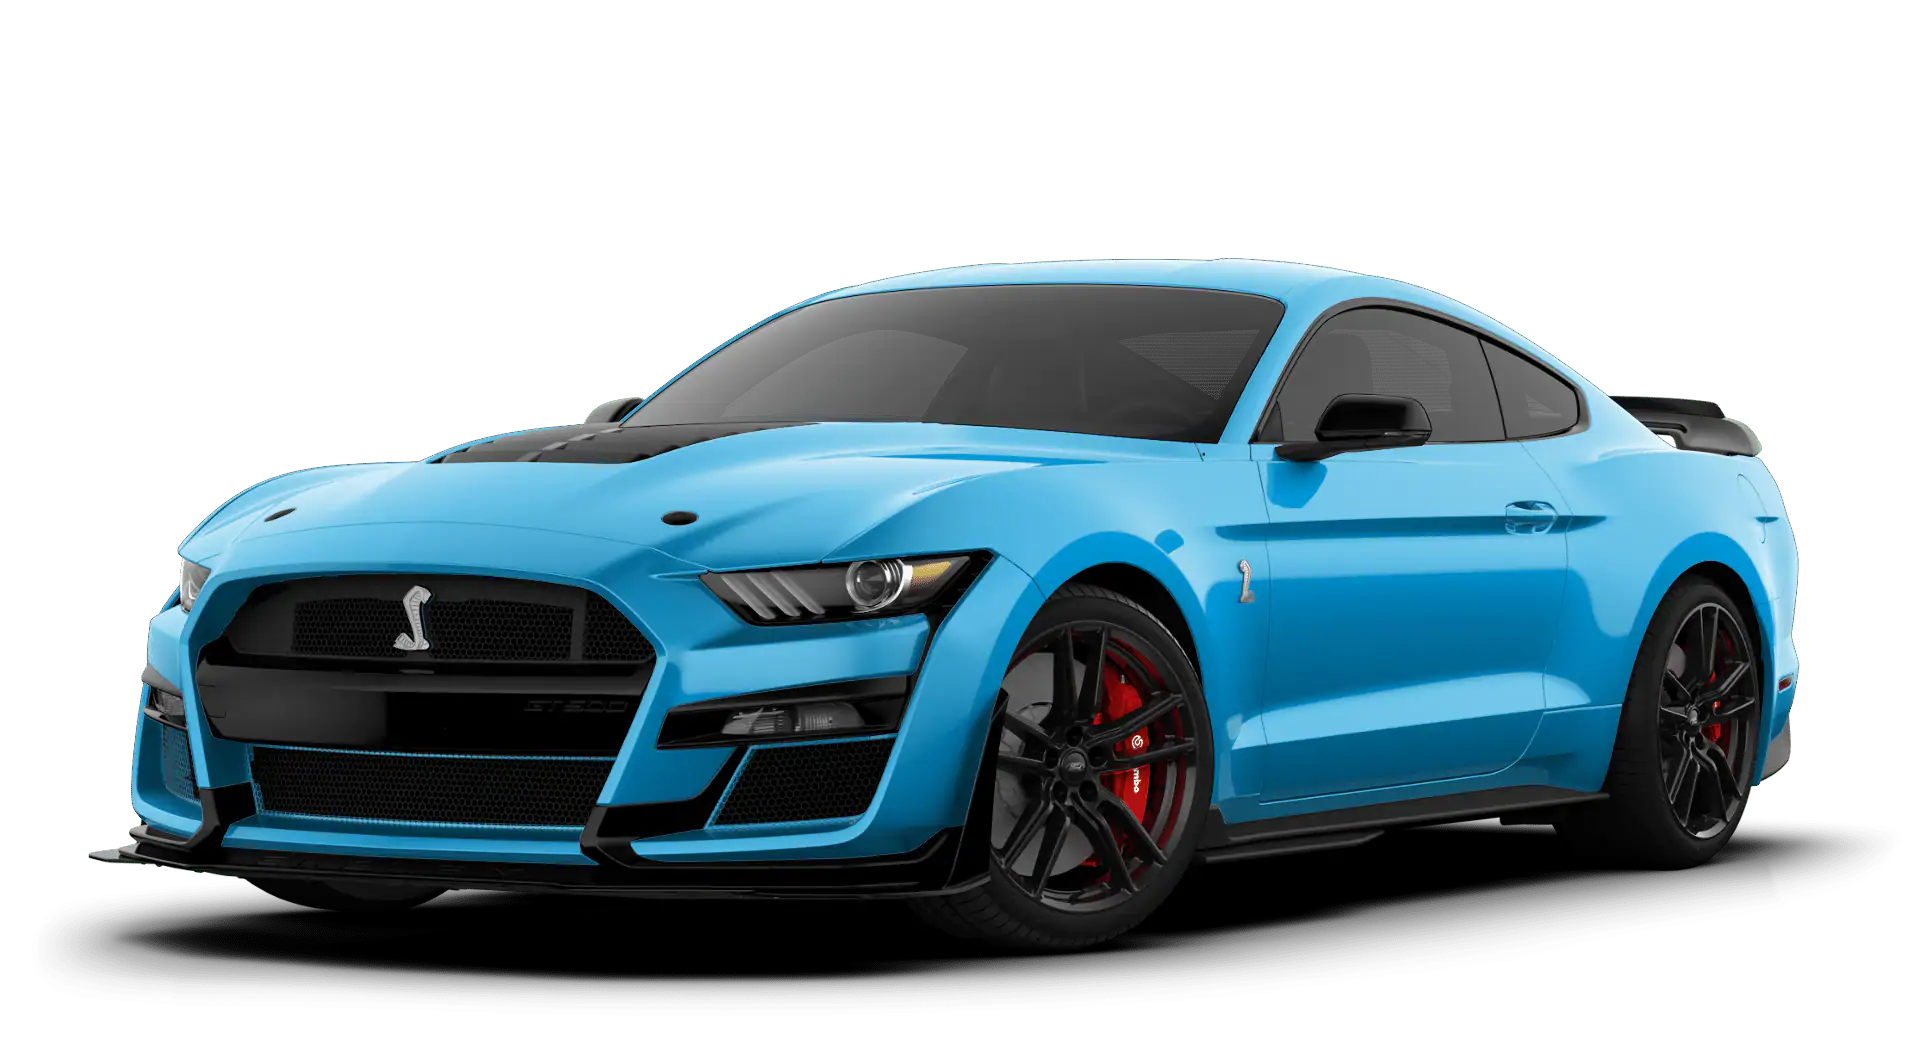 2020 Ford Mustang Shelby GT500 Velocity Blue